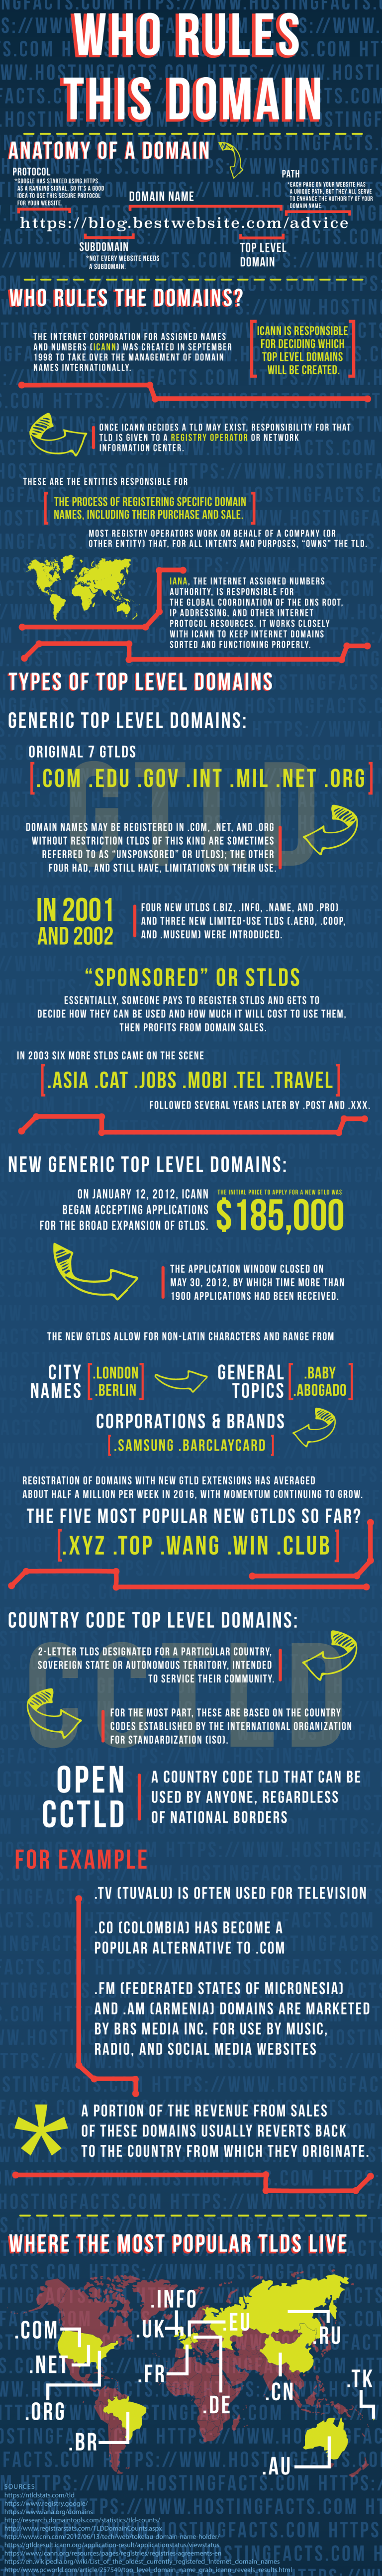 Top Level Domains Explained